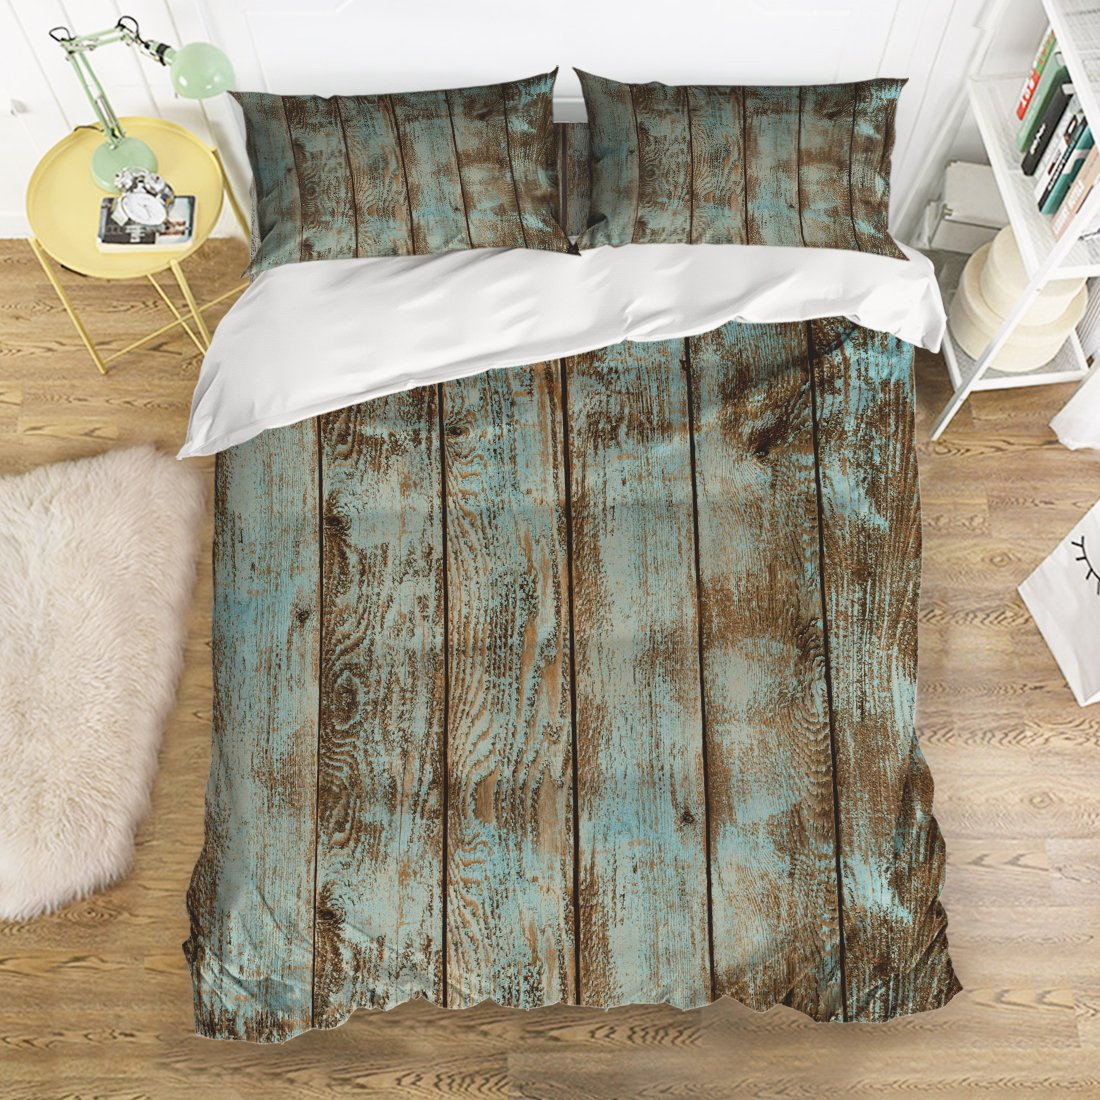 4 Piece Bedding Sets Rustic Wood Board Pattern Duvet Cover Set Reversible Comforter Set 1 Flat Sheet 1 Duvet Cover and 2 Pillow Cases by YEHO Art Gallery (Twin Size)